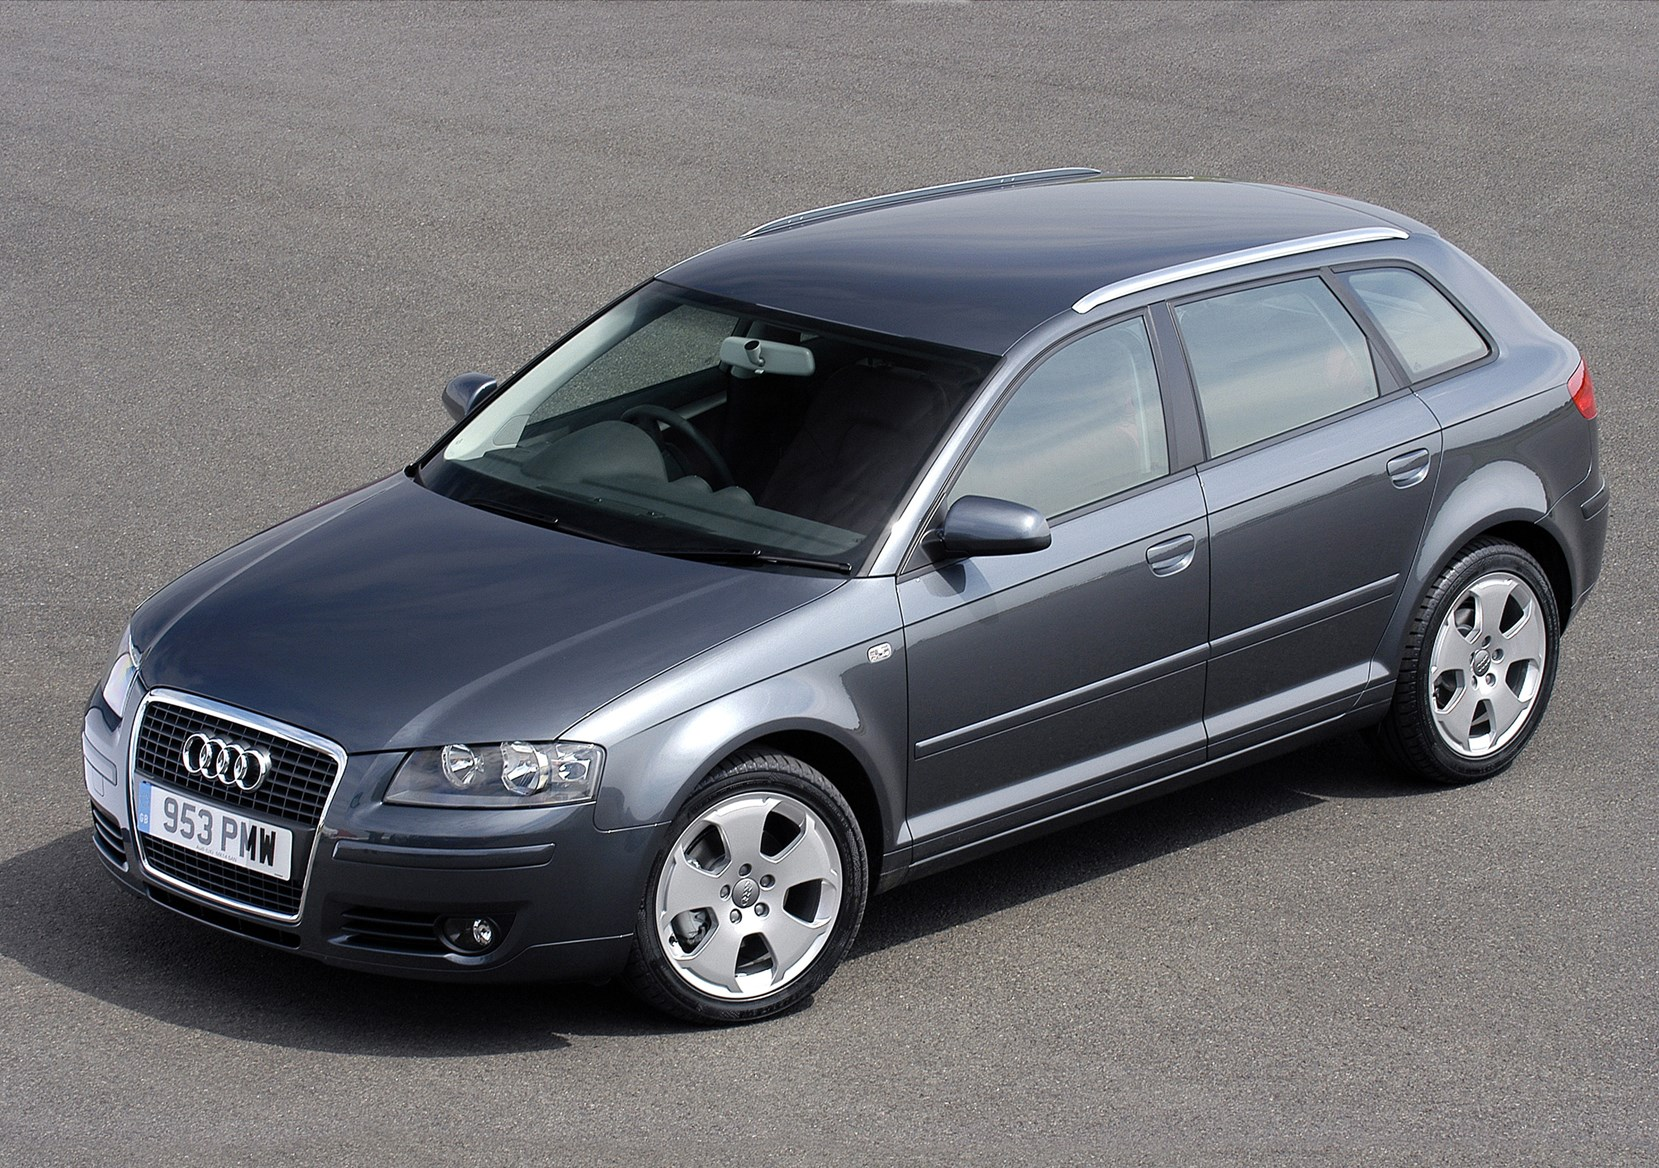 Used Audi A3 Sportback (2004 - 2013) Practicality | Parkers